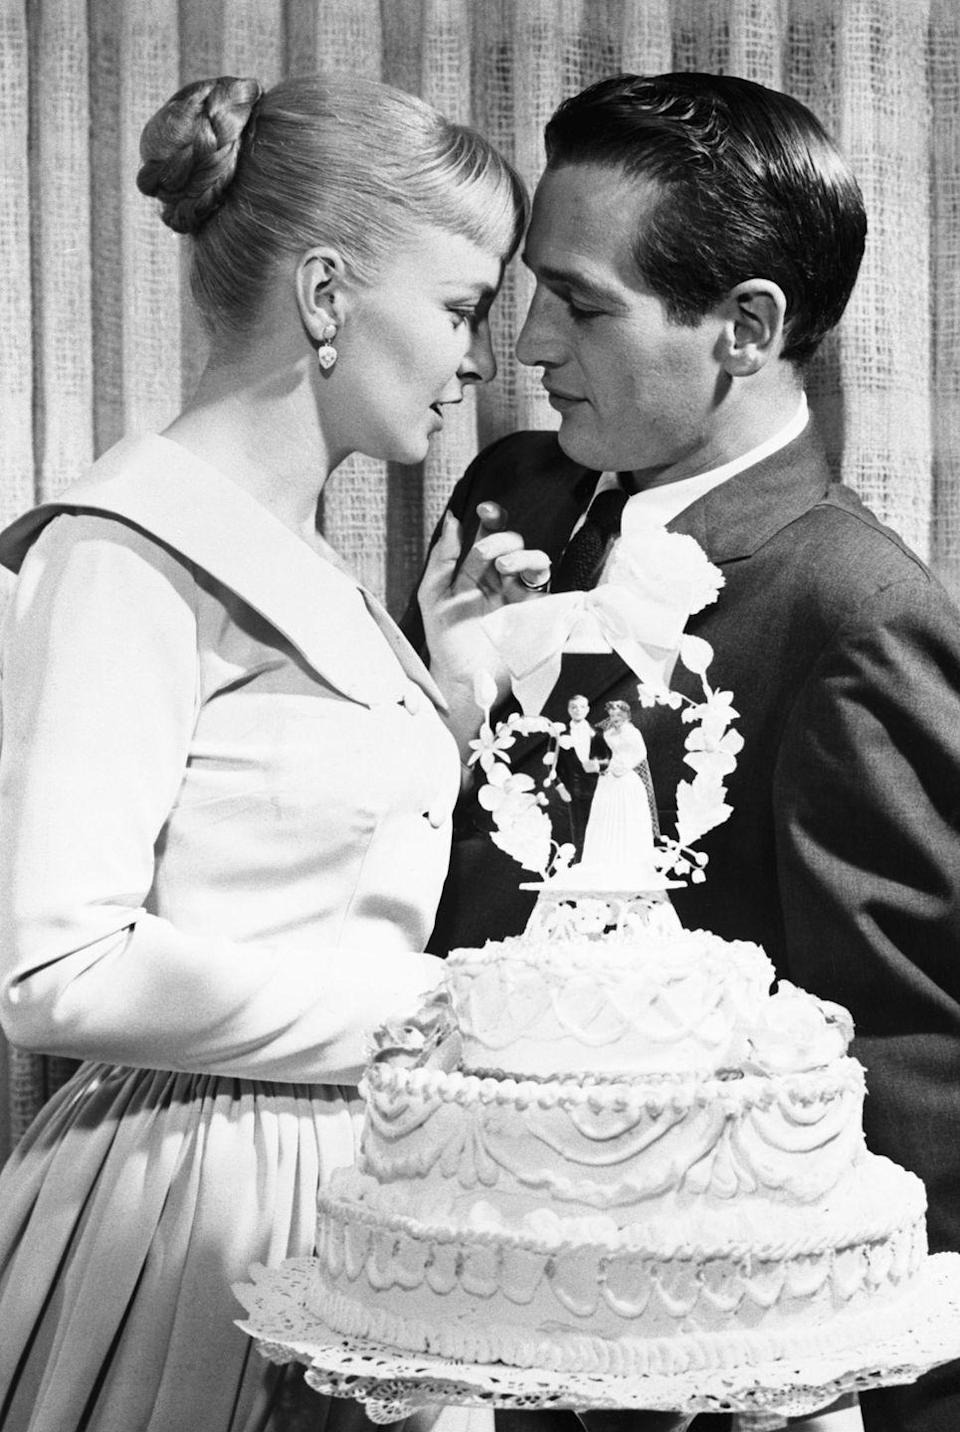 <p>It seems like nothing could break Joanne Woodward and Paul Newman's gaze on their wedding day—not even their cake! The couple was married for 50 years, until Newman's death in 2008.</p>